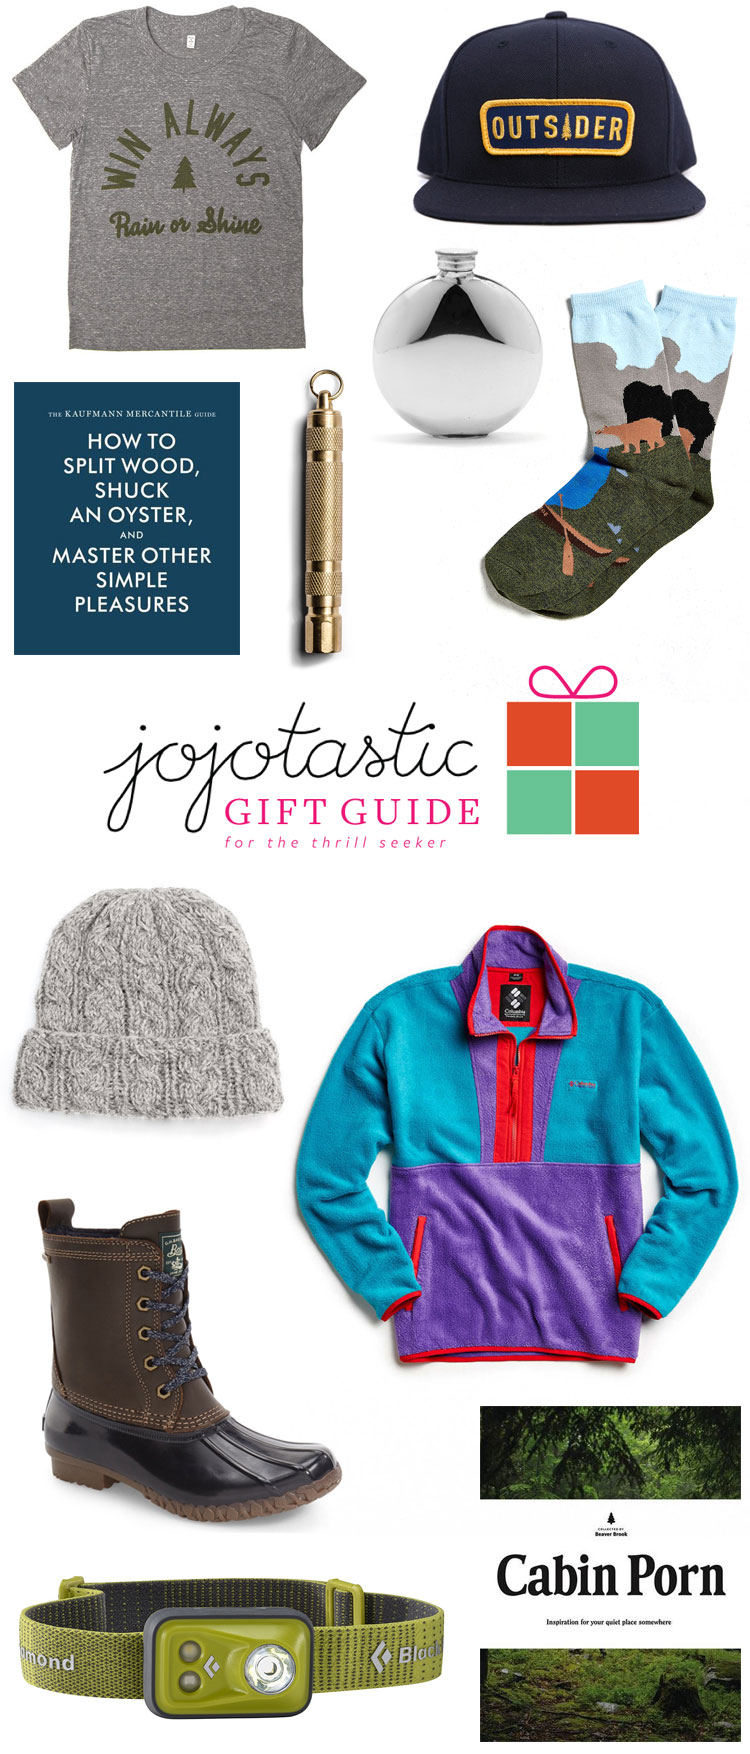 the ultimate gift guide for the thrill seeker / adventurer — great gift ideas for this holiday season for the outdoorsy type. find more gift ideas on Jojotastic.com